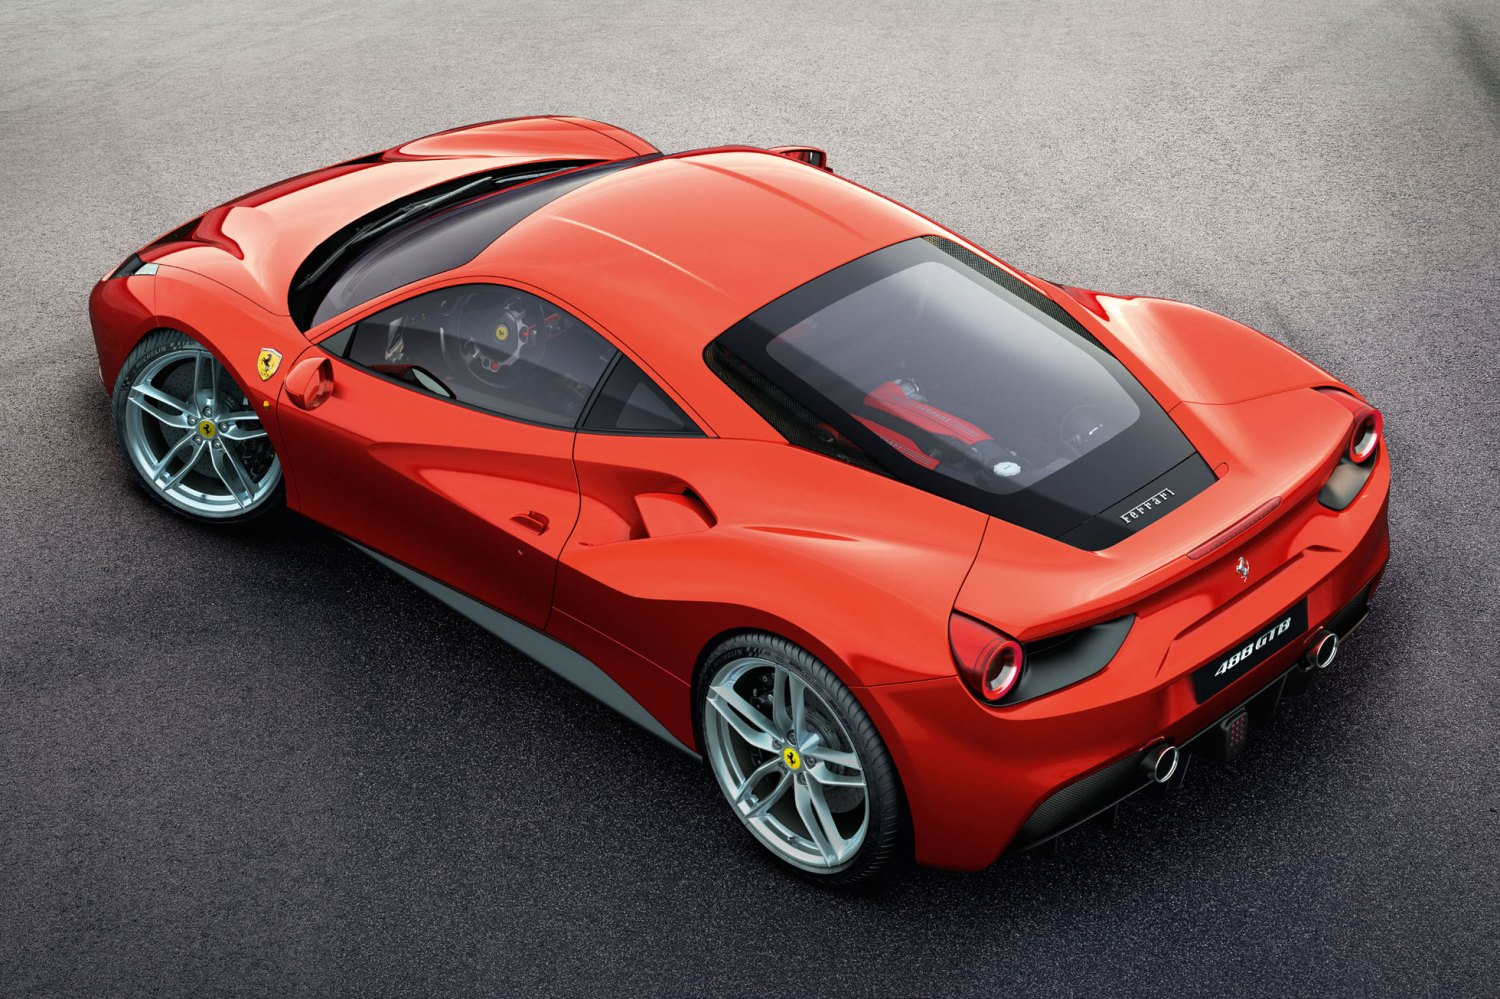 Ferrari reveals turbocharged 488 GTB ahead of Geneva Motor Show debut